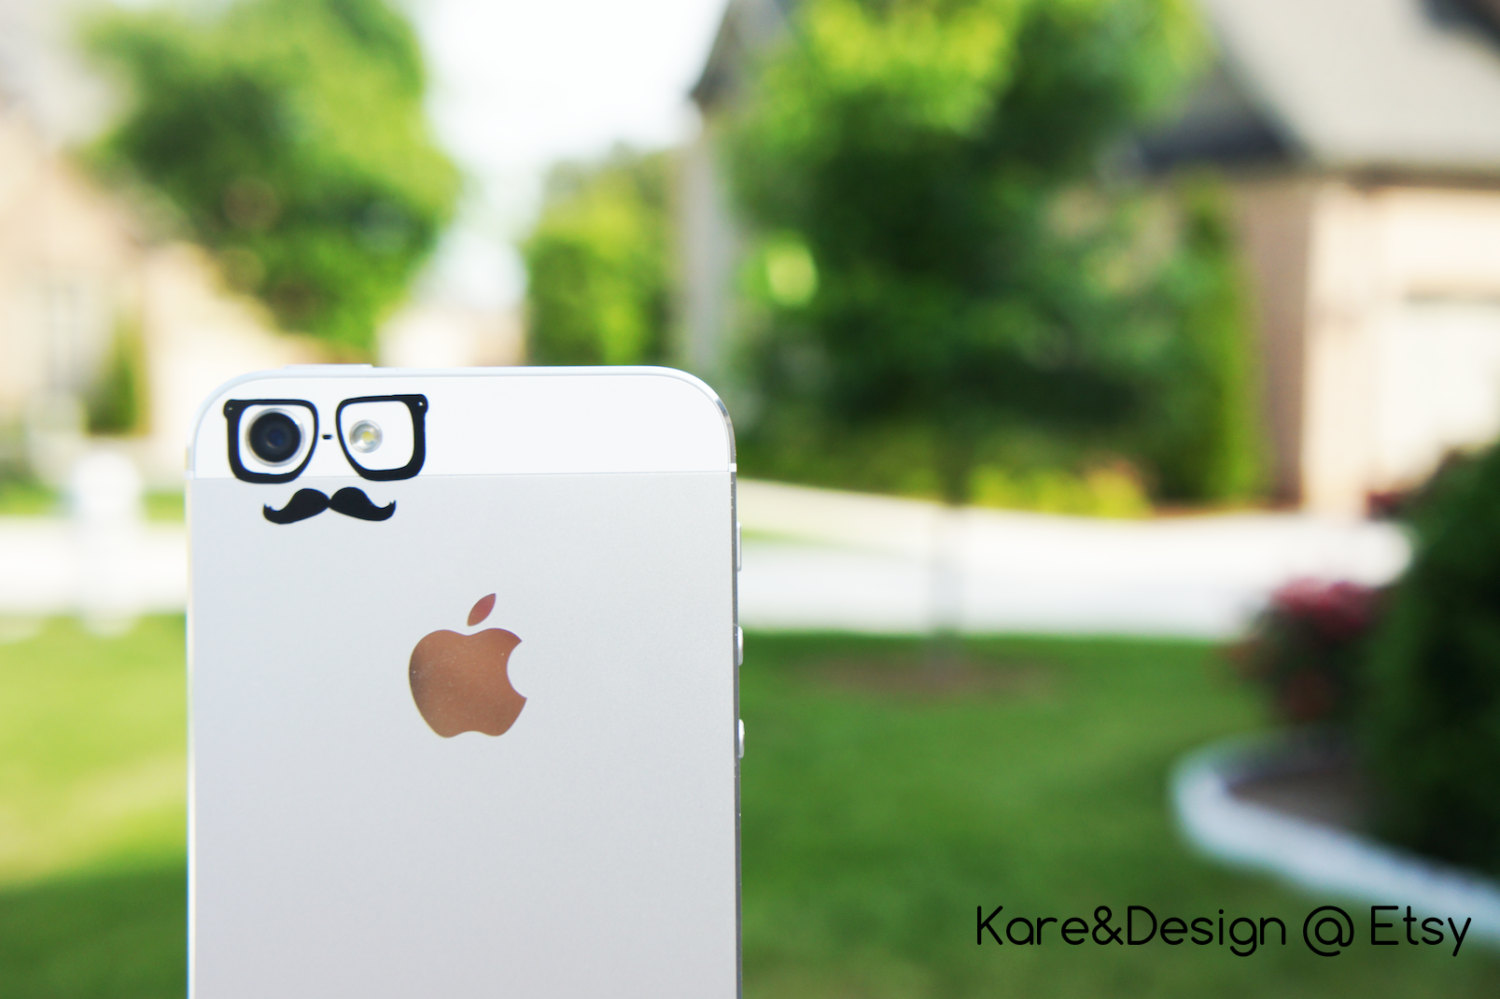 Hipster (glasses & mustache) iphone 5/5c vinyl decal for camera eyes